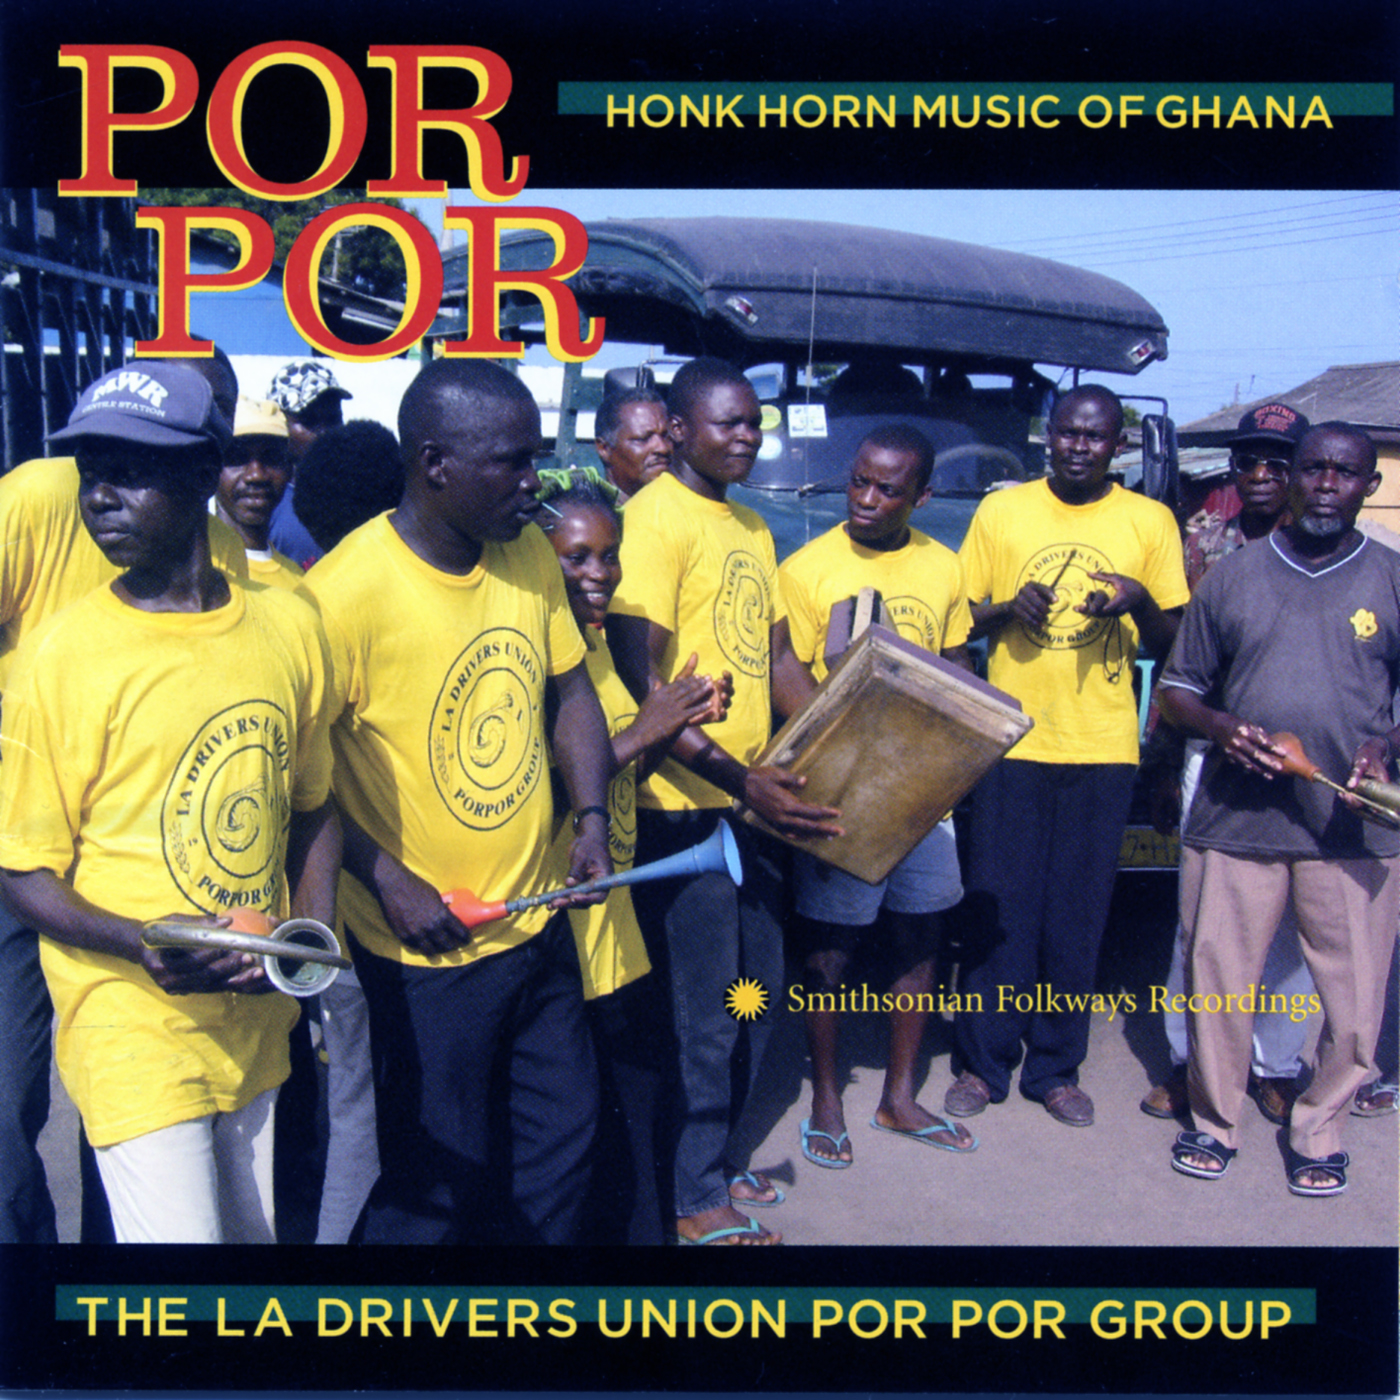 They're Ghana Love It!: Experiences with Ghanaian Music for